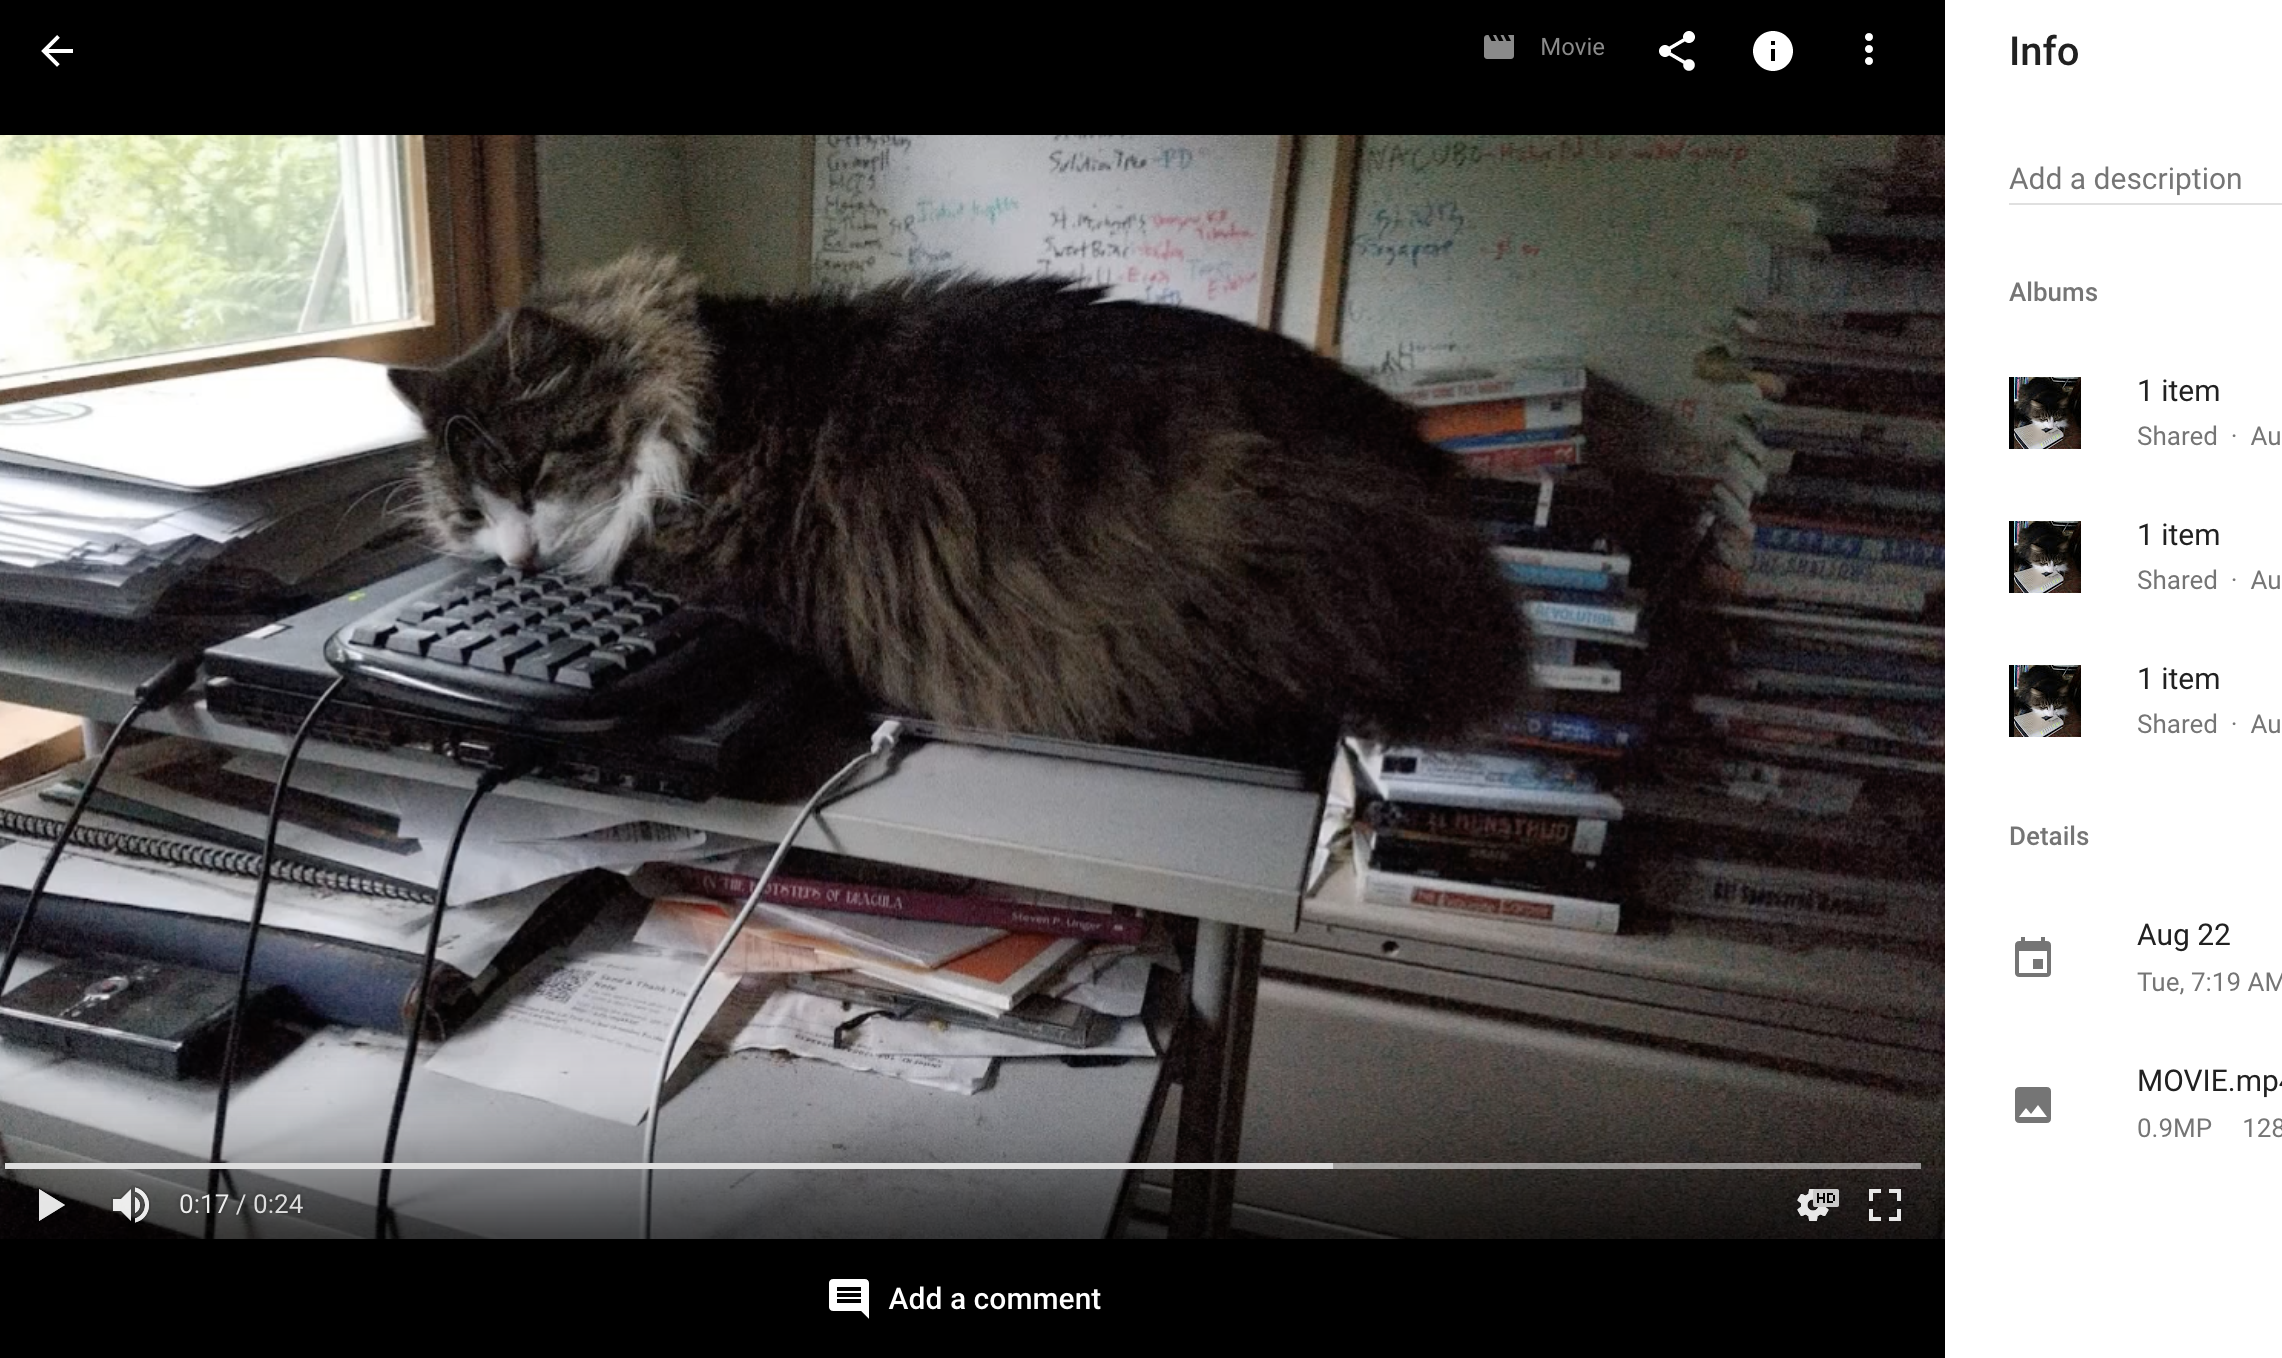 cat videos have brought the posthuman era upon us all